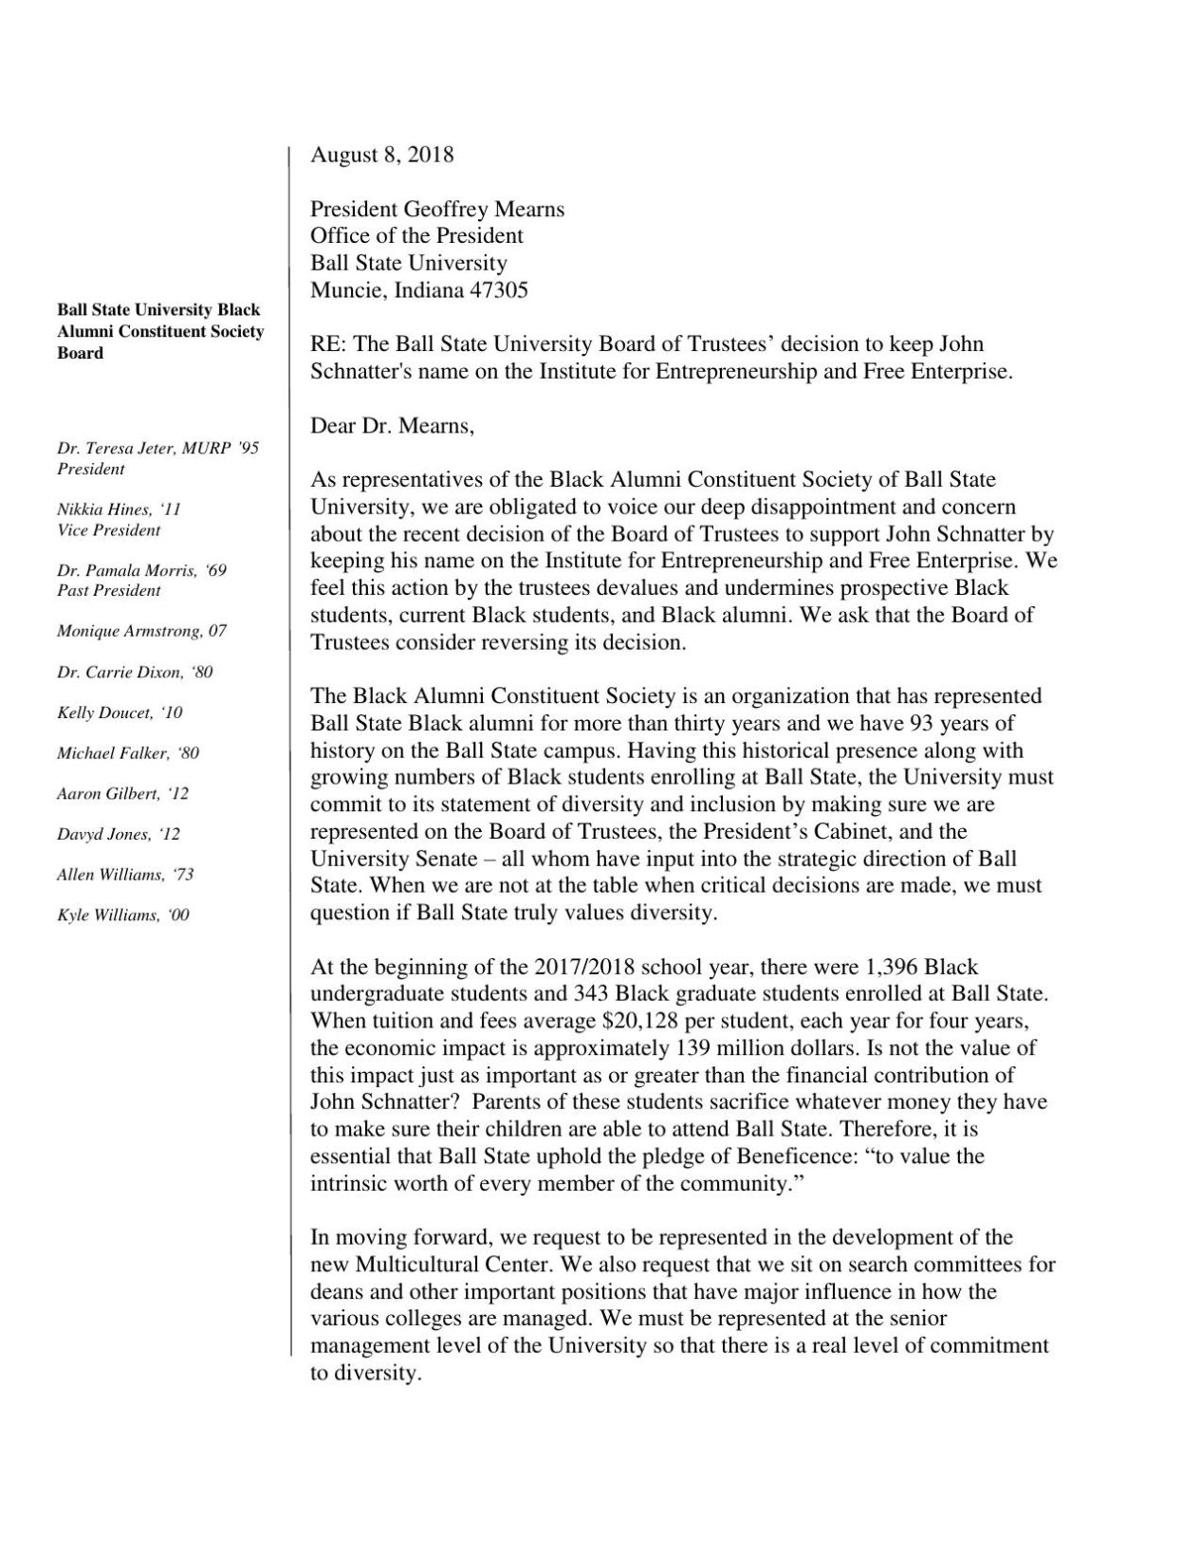 Letter to Ball State President